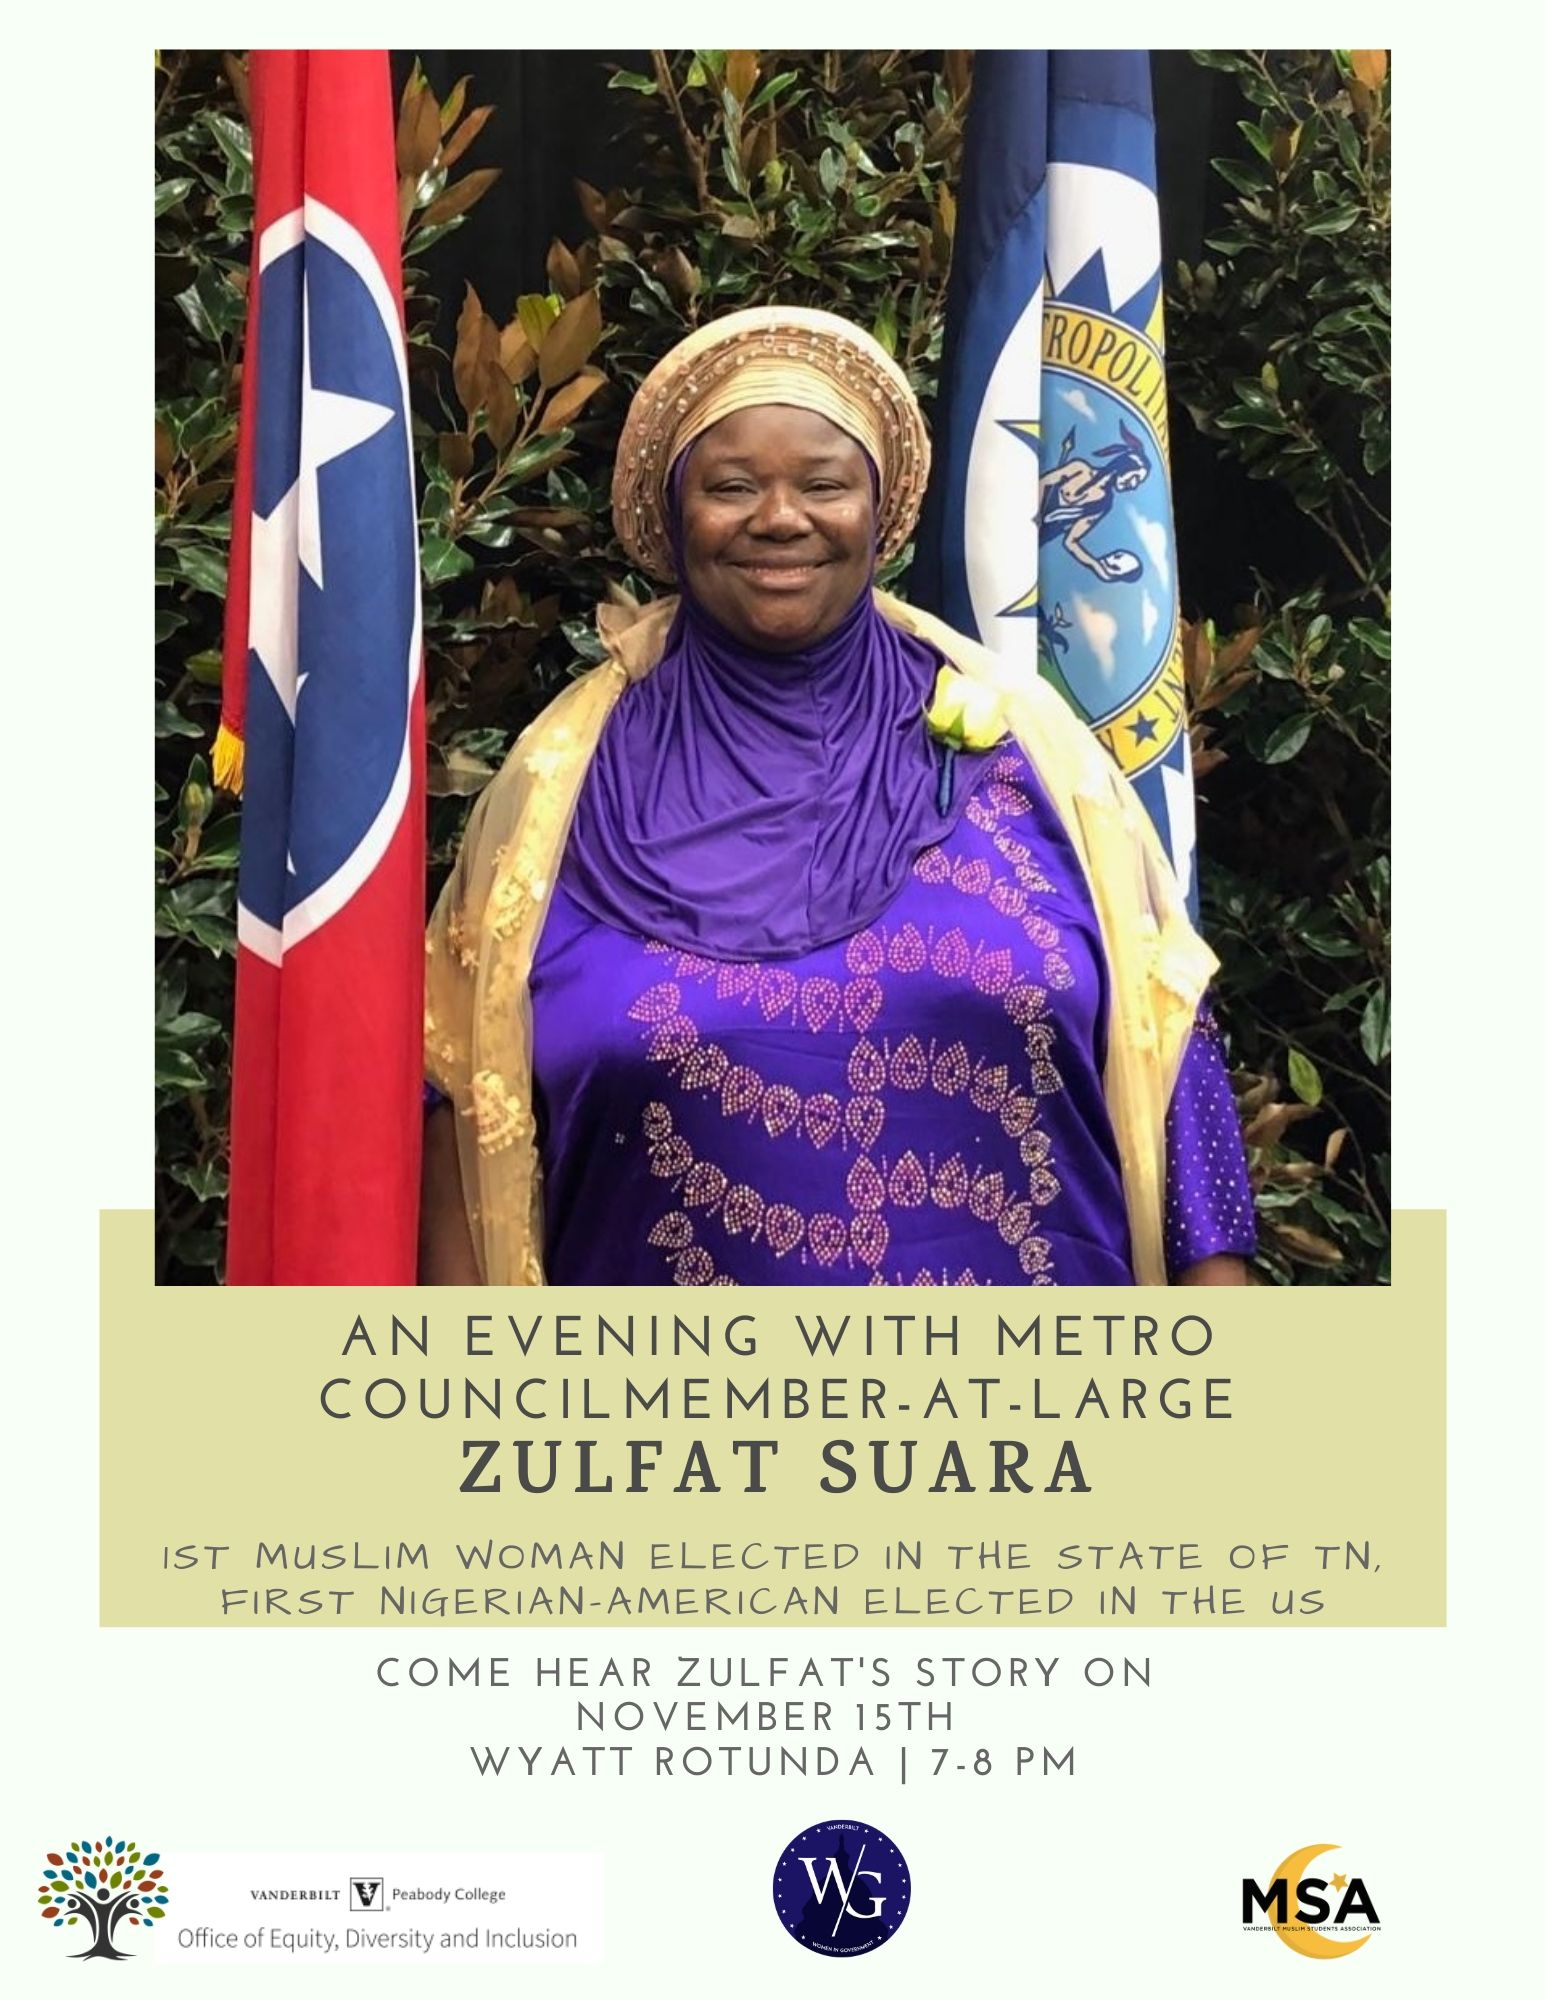 An Evening w/ Council Member Zulfat Suara